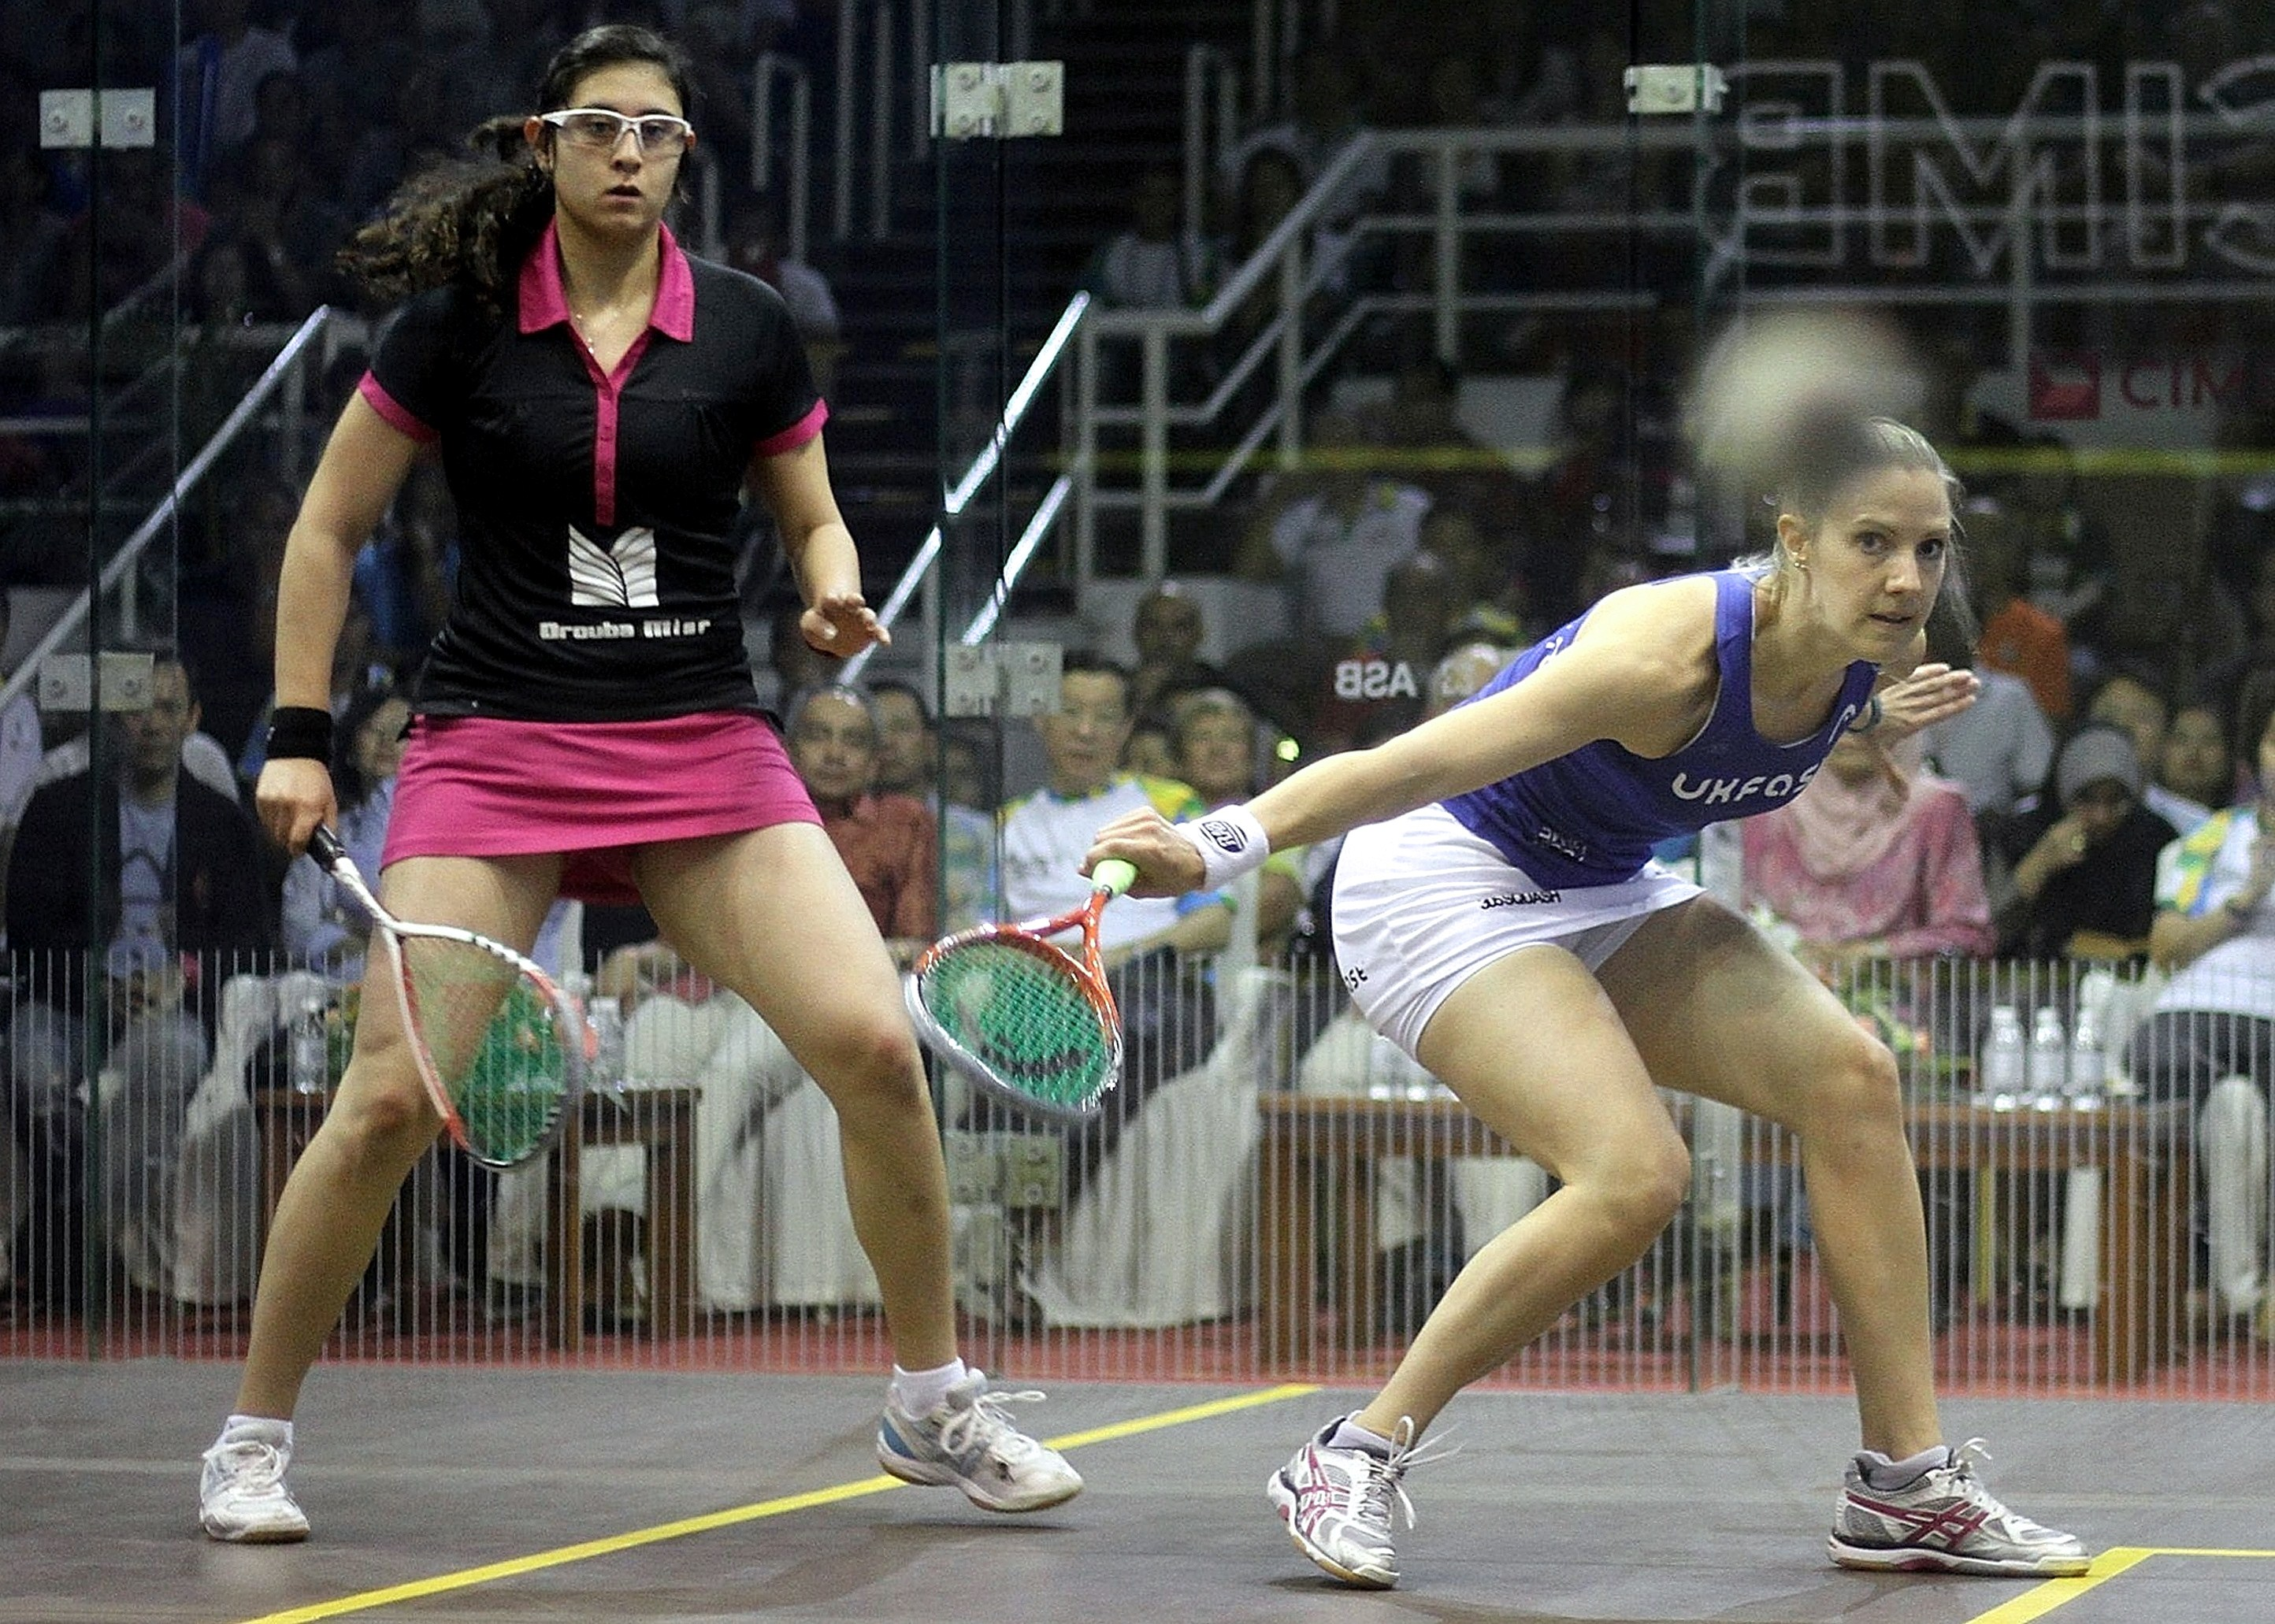 The 2014 Women's World Squash Championship will take place in Egypt from 15-20 December following an agreement this week between the Women's Squash Association (WSA) and Wadi Degla Holding.    (AFP FILE PHOTO)